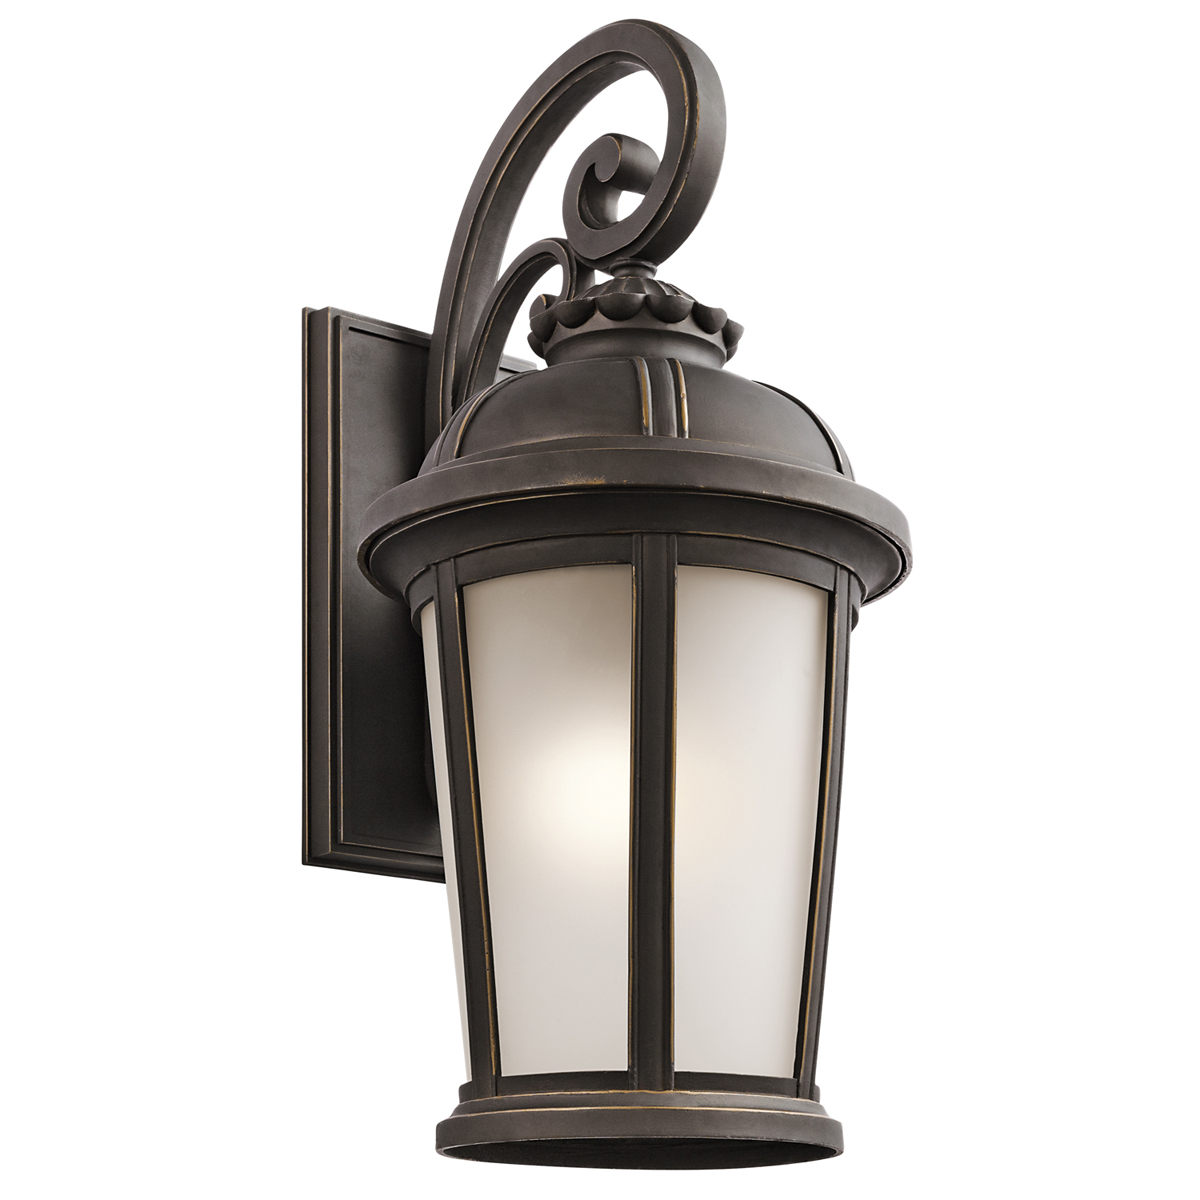 Kichler Lighting (49414RZ) Ralston 1-Light X-Large Outdoor Wall Sconce in Rubbed Bronze